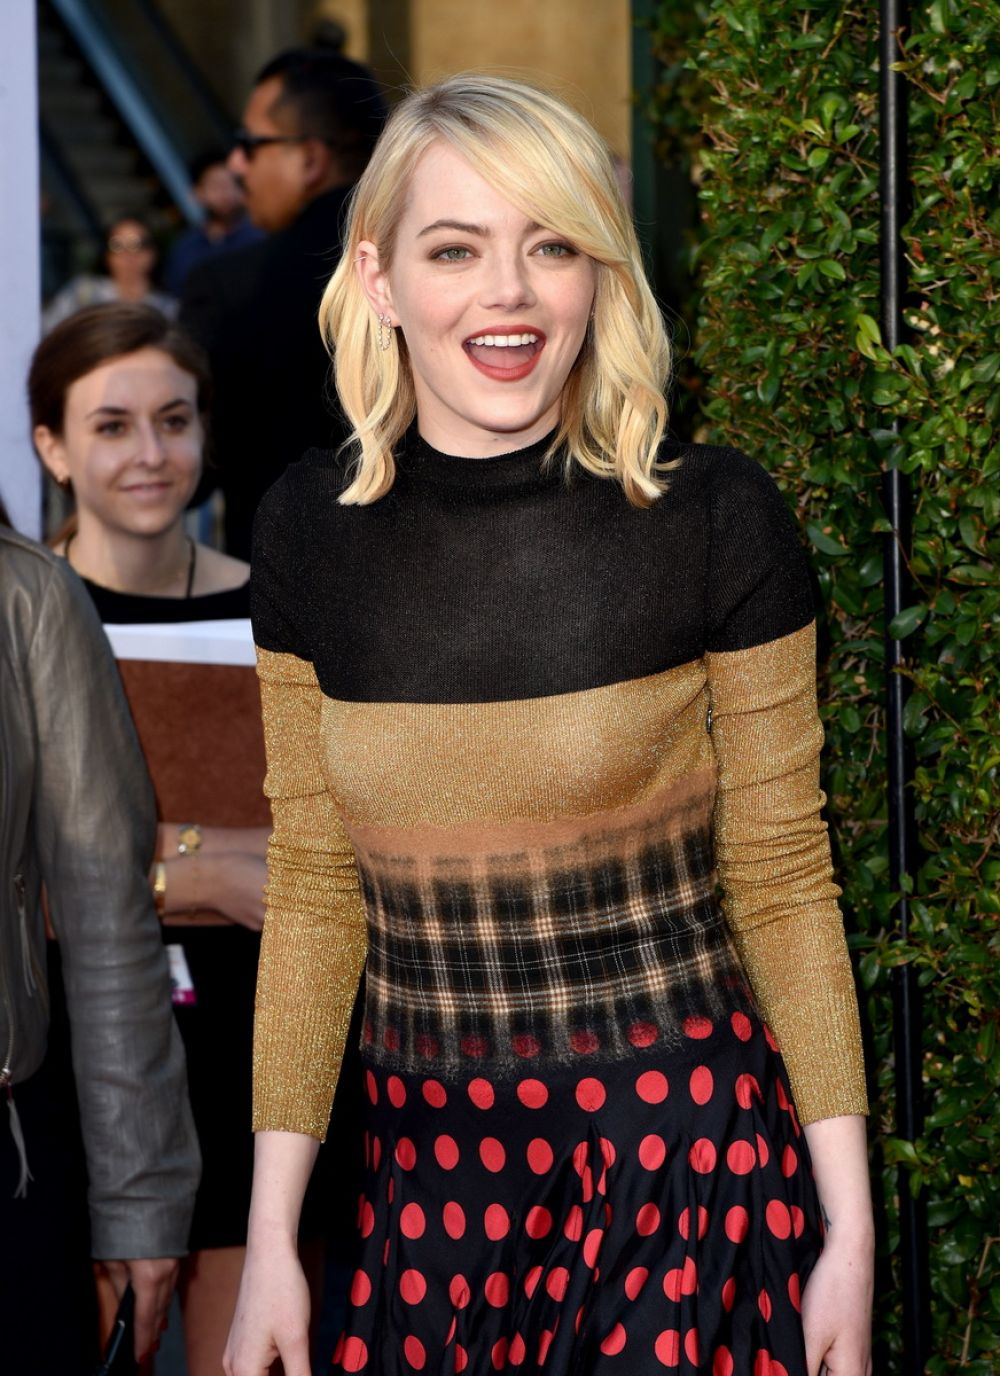 EMMA STONE at AFI Life Achievement Award in Los Angeles 06/08/2017